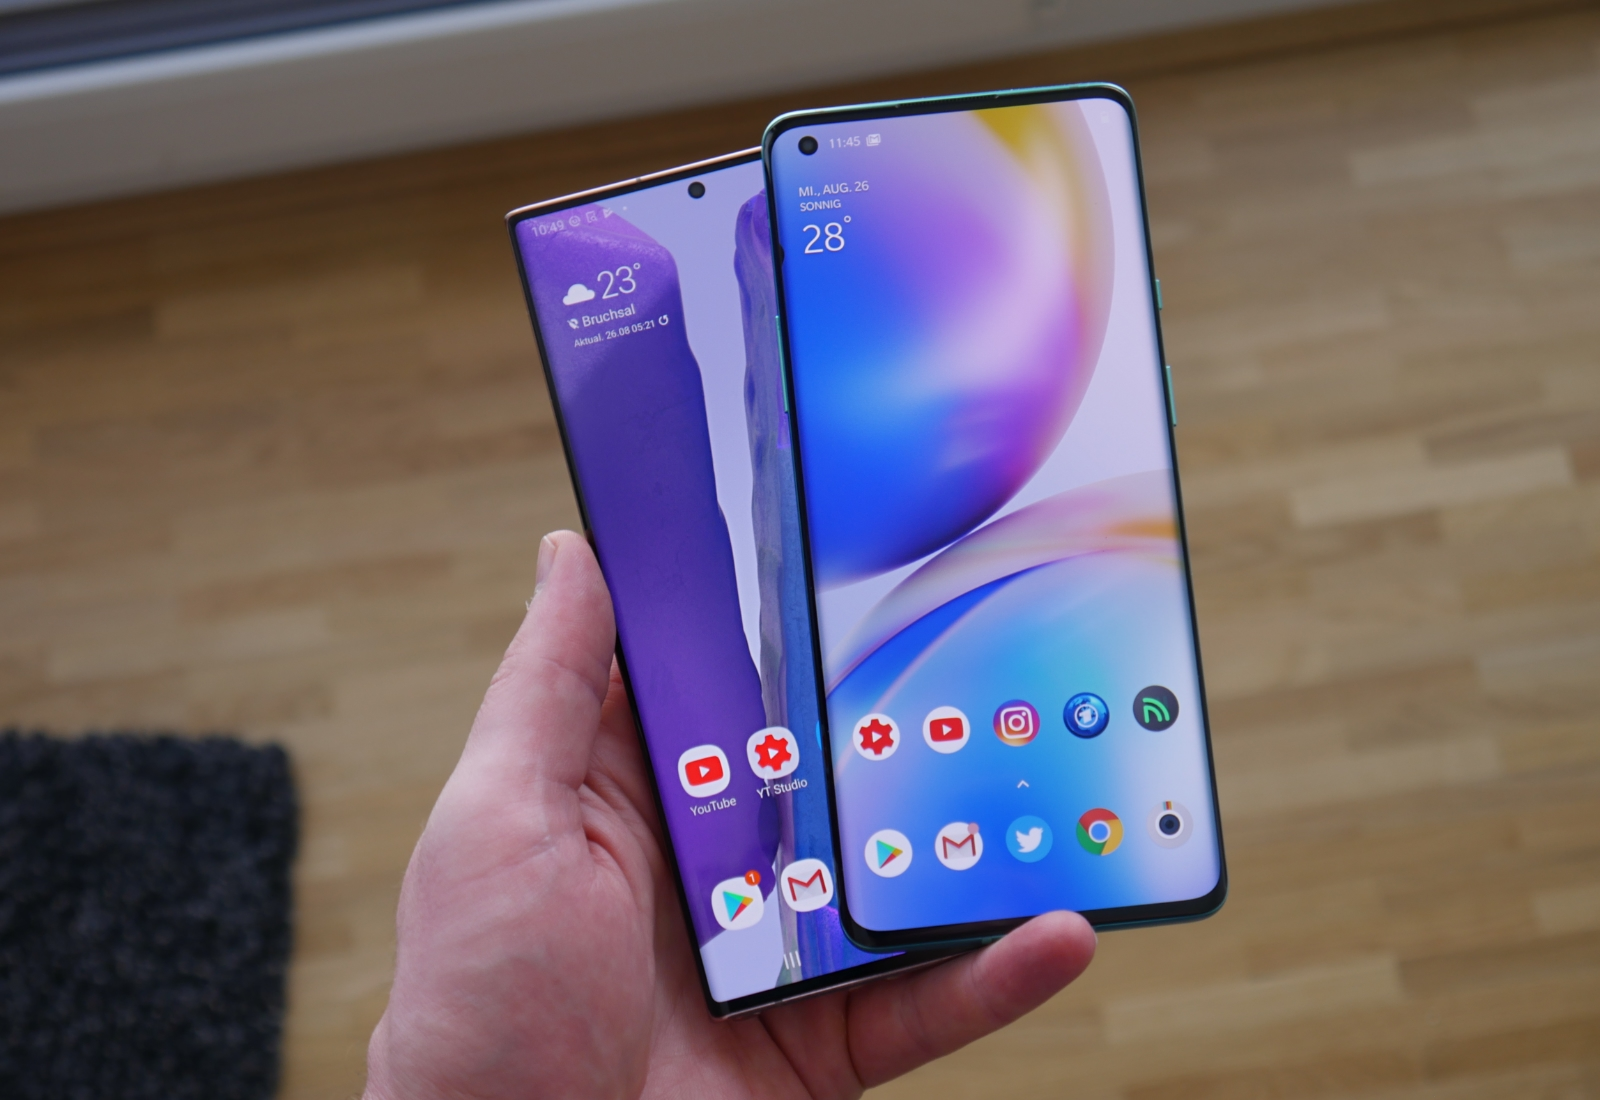 Samsung Galaxy Note 20 Ultra Oneplus 8 Pro Hand Front